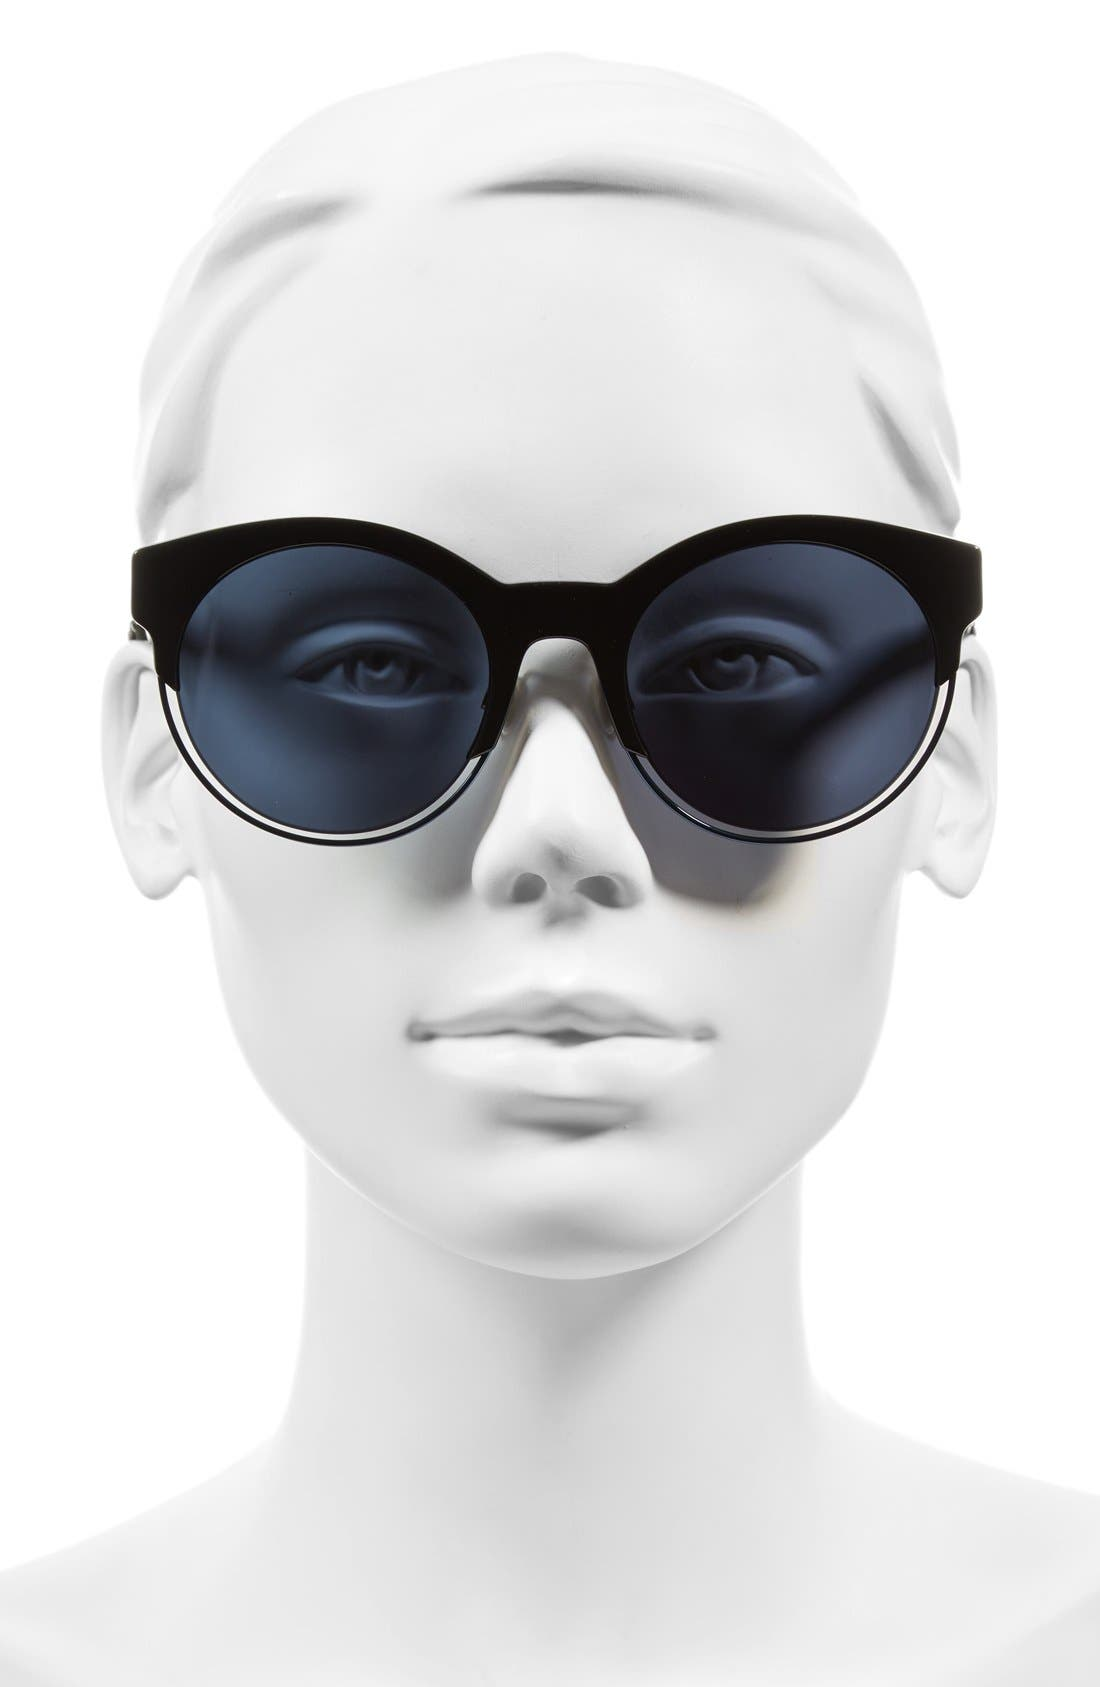 Siderall 1 53mm Round Sunglasses,                             Alternate thumbnail 11, color,